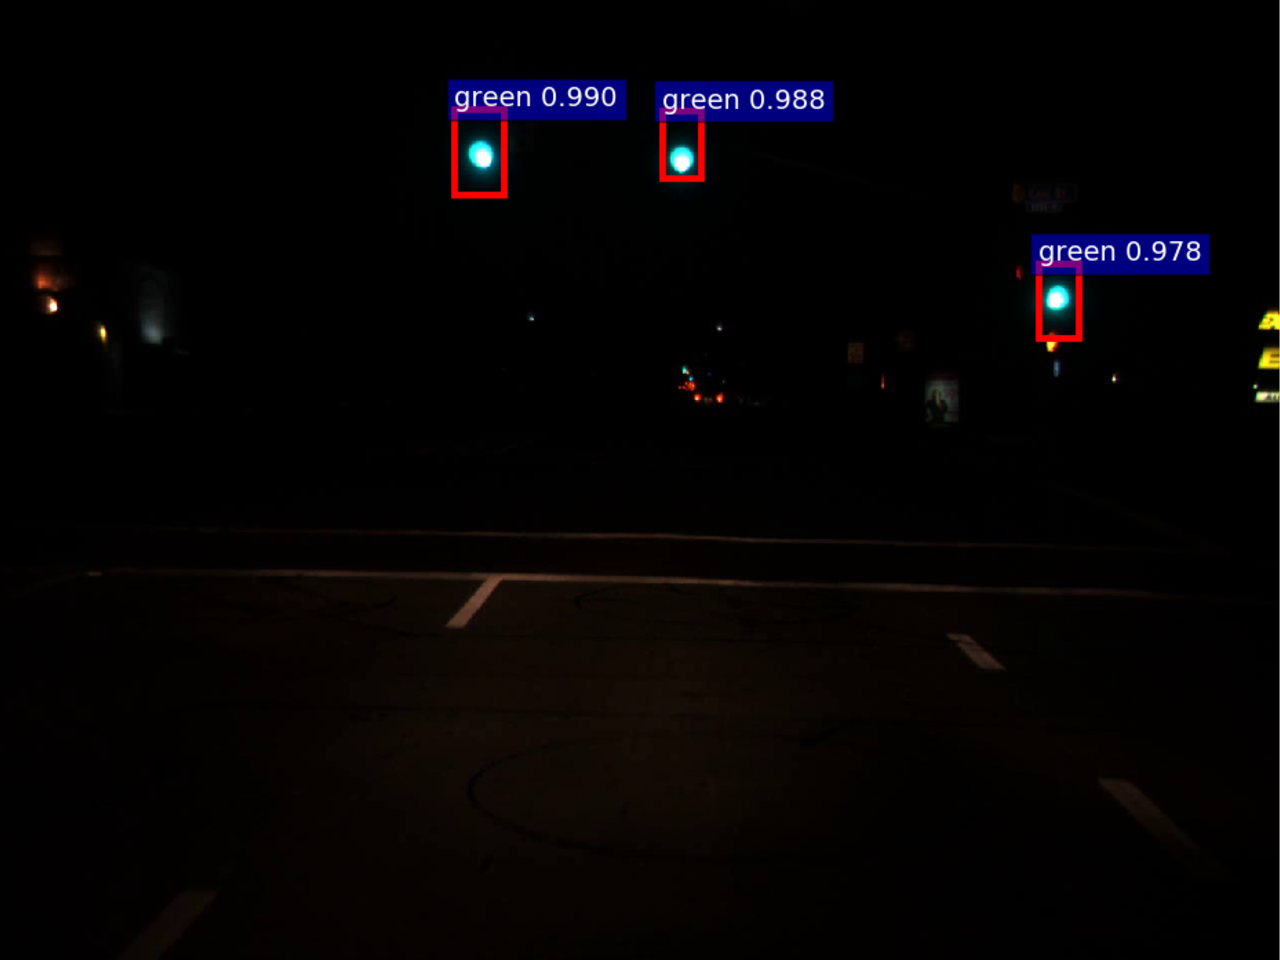 Traffic Light Recognition using Deep Learning